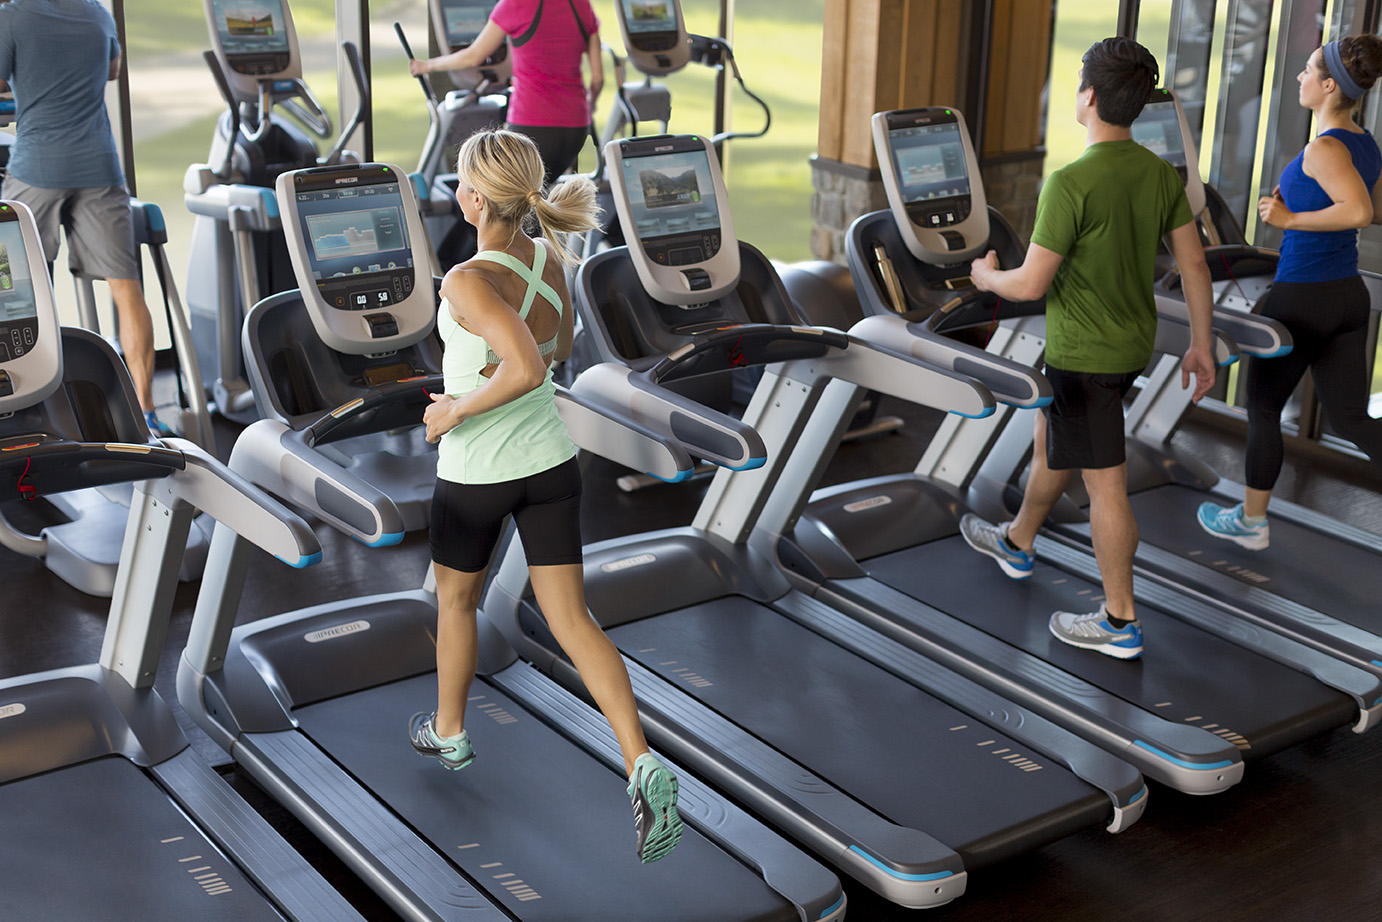 Commercial fitness for Gimnasio fitness club